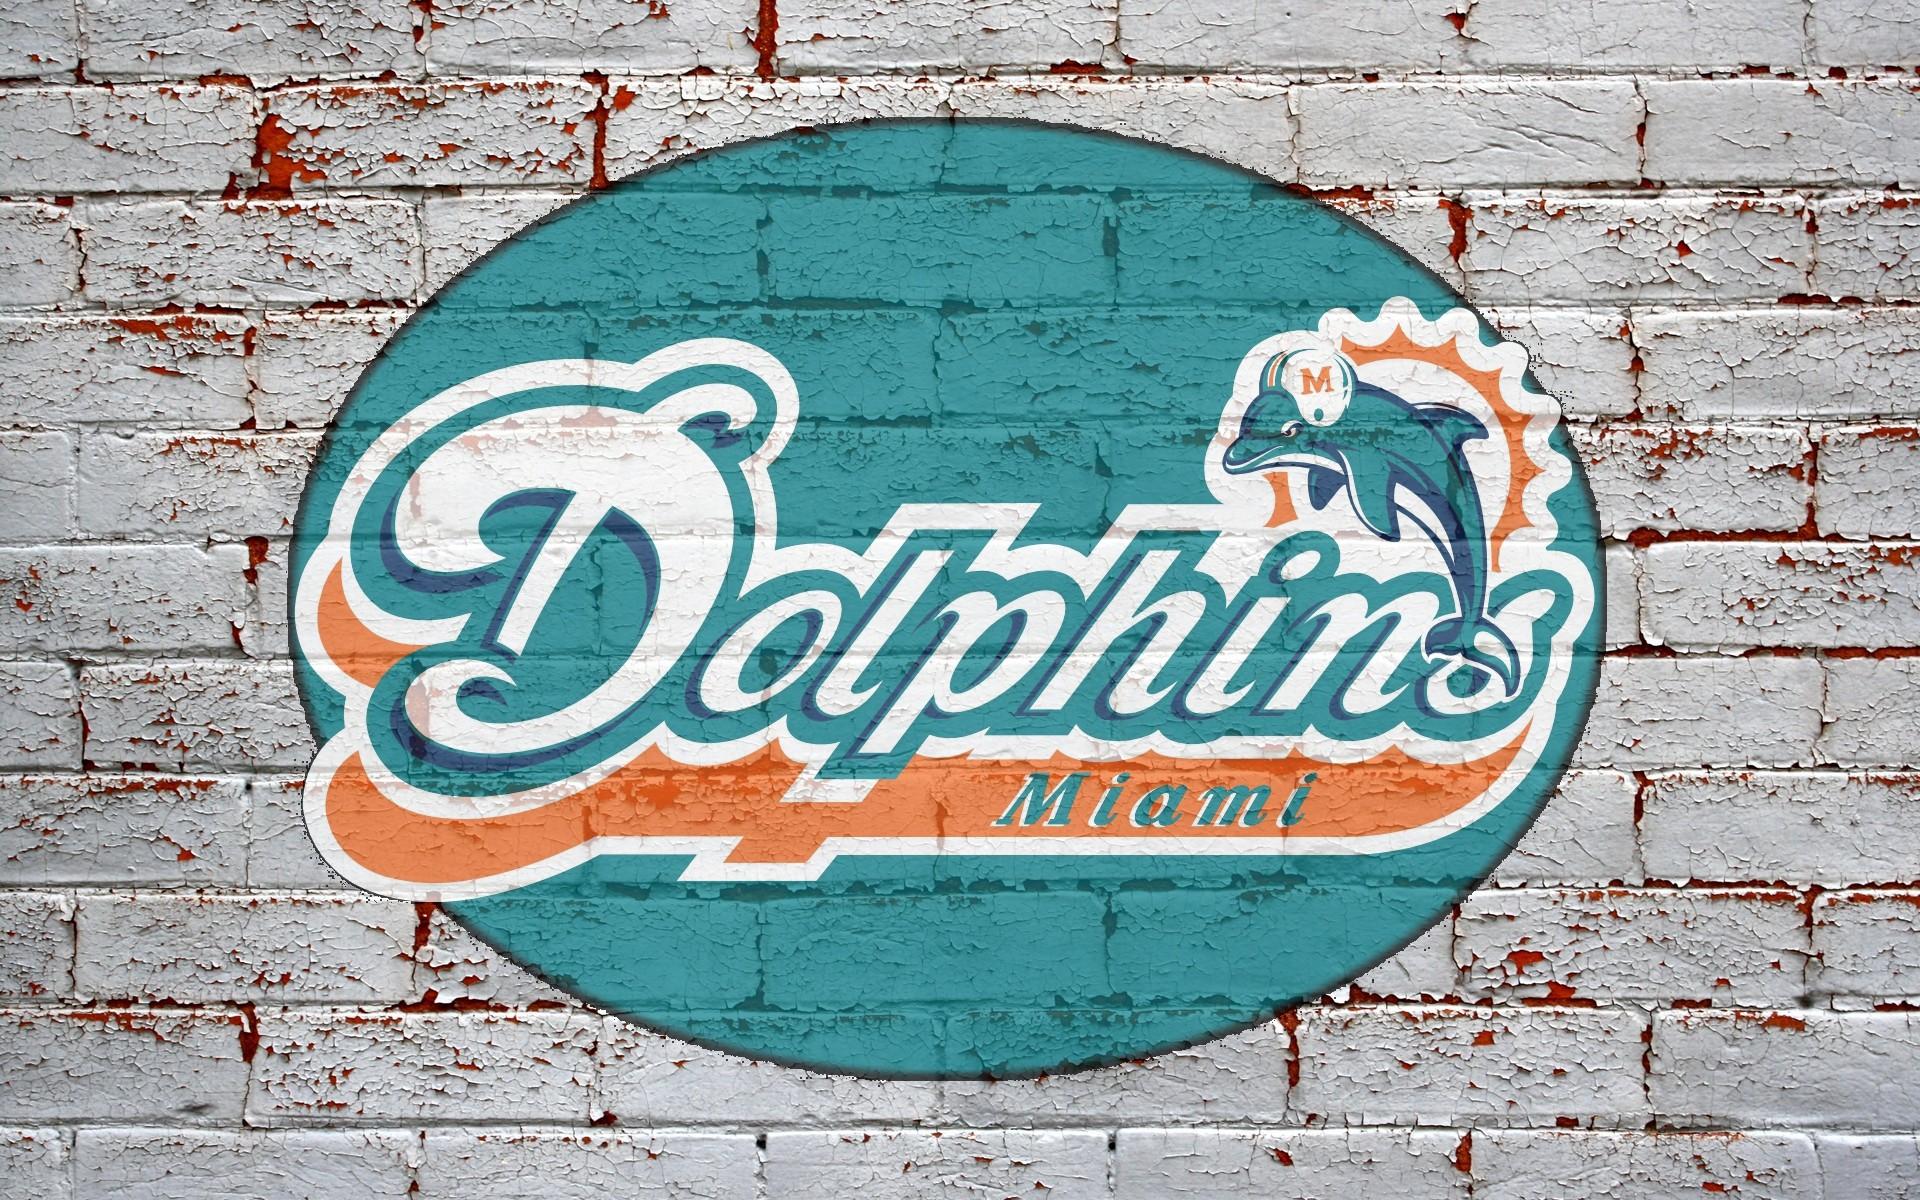 Miami dolphins wallpaper 14697 1920x1200 px hdwallsource miami dolphins wallpaper 14697 voltagebd Gallery